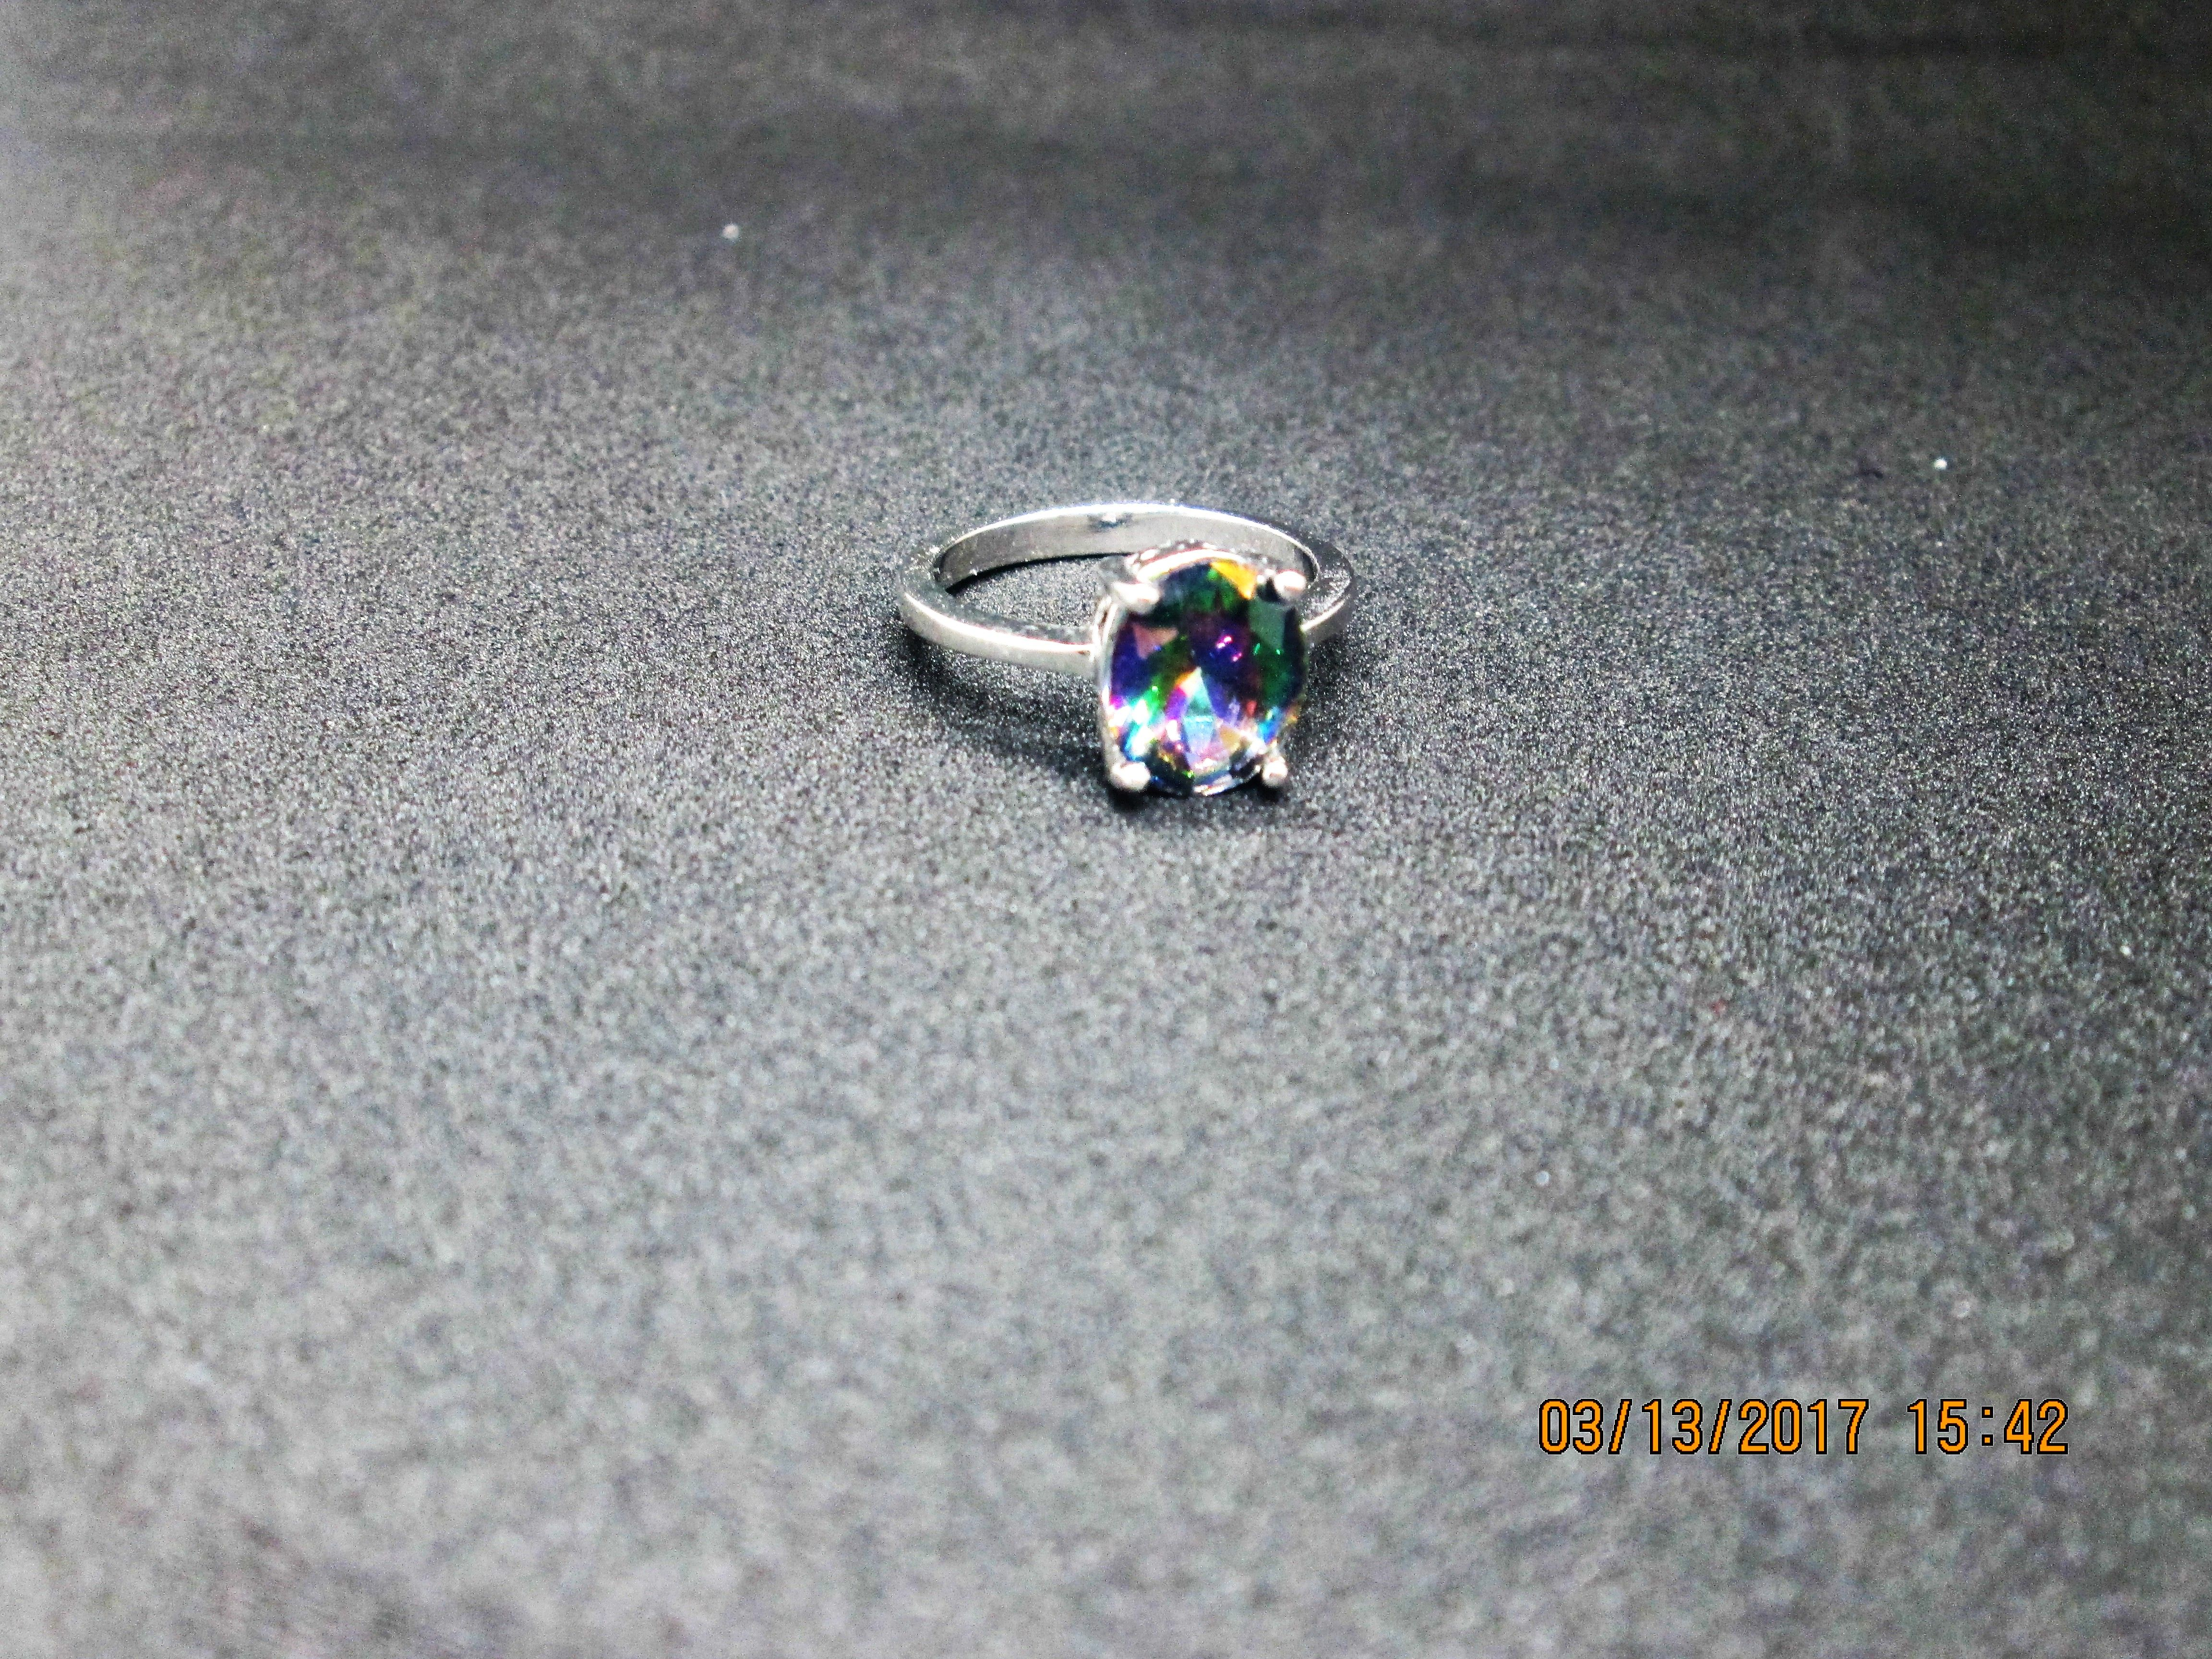 This ring is so pretty! I love how the gem looks different shades of green and purple all at once. The ring is made very well. Super shiny and nice details!  Under 20 bucks! You can't beat that!